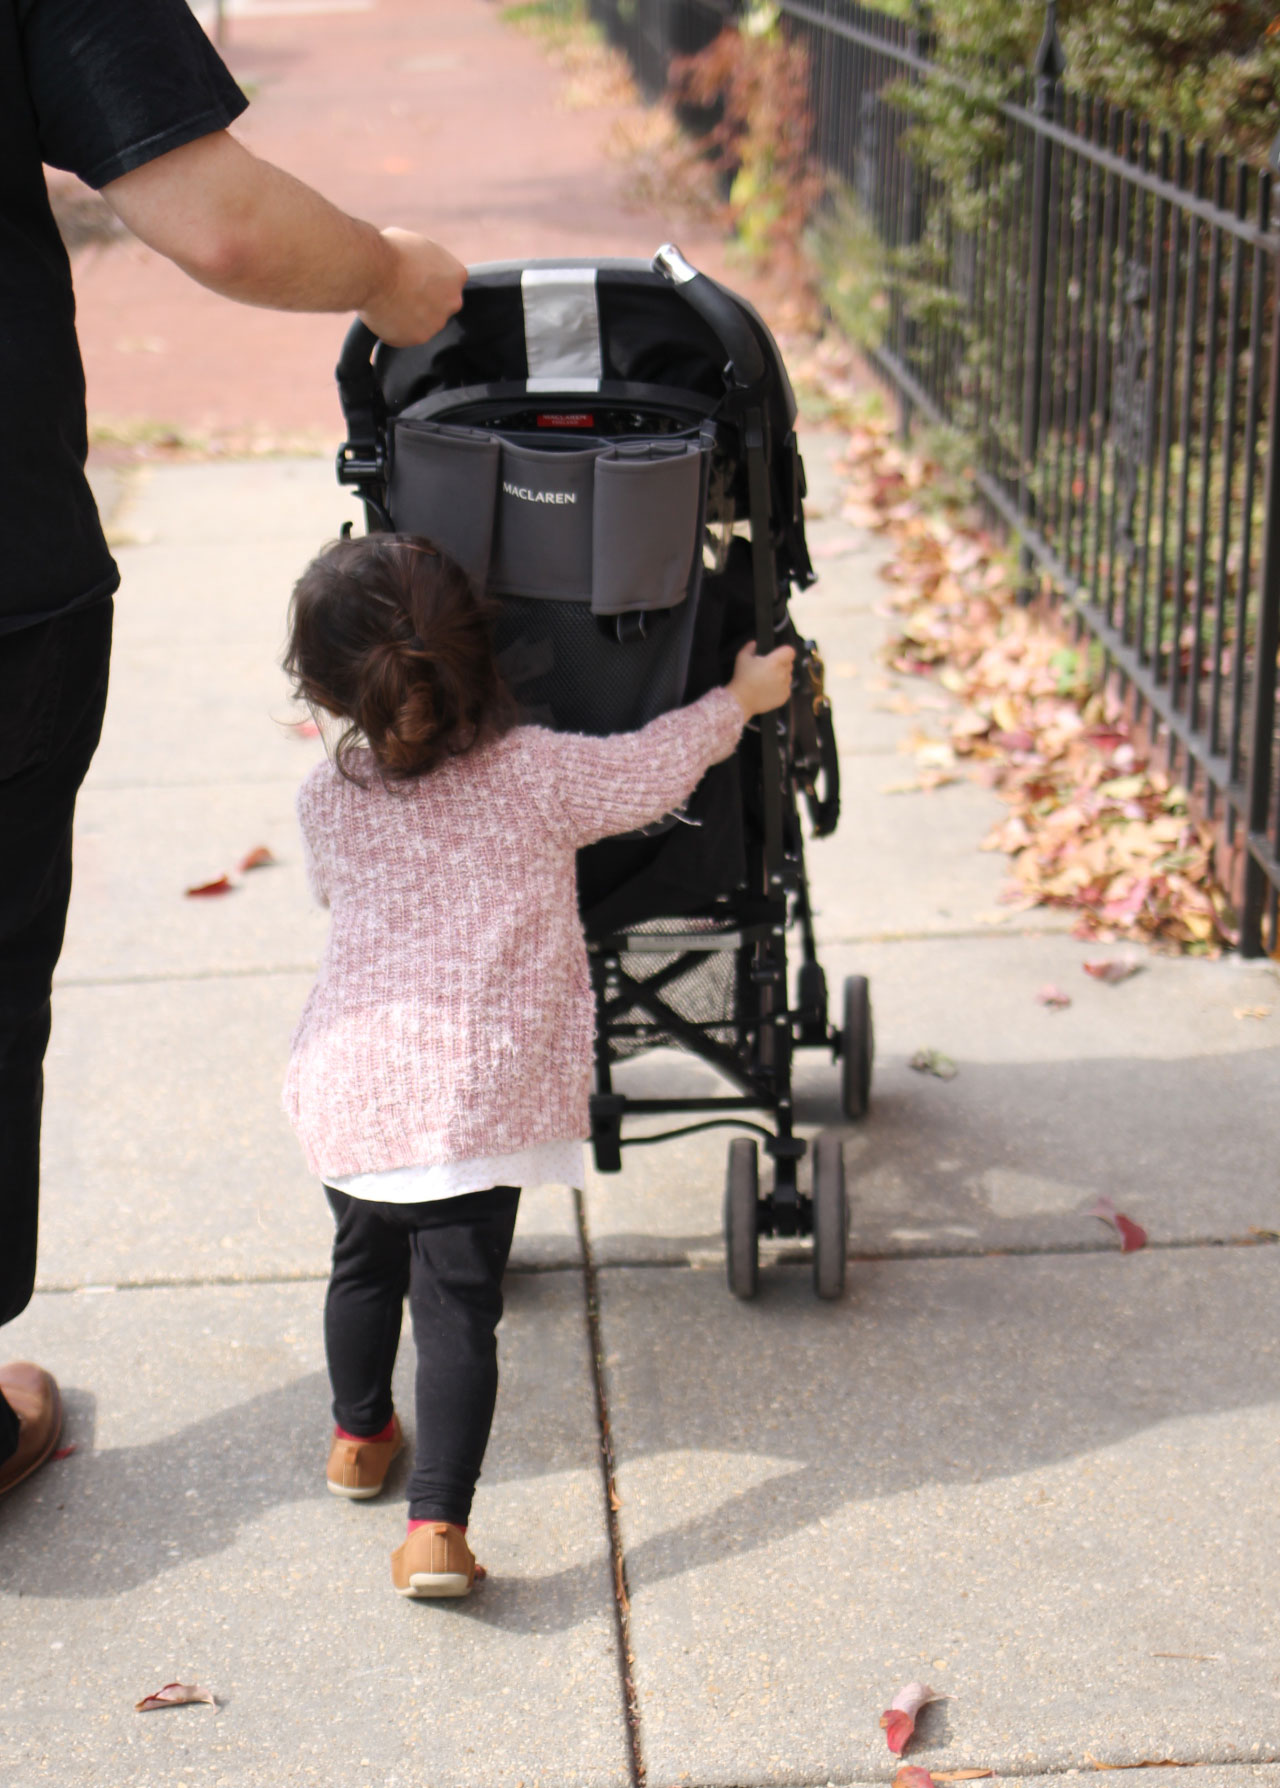 scarlett-pushing-the-stroller-3